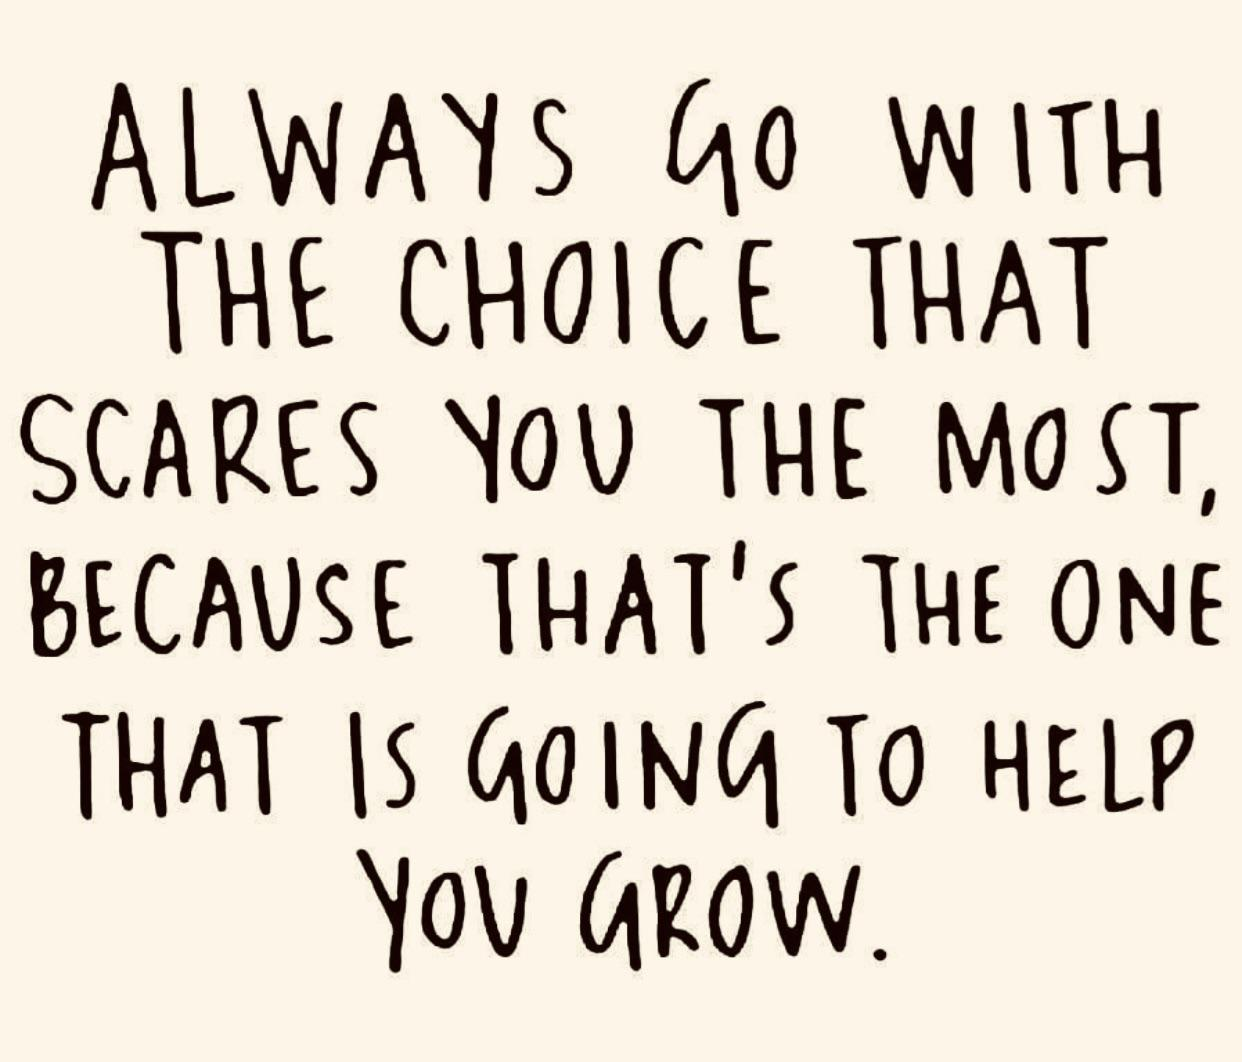 [Image] This is how you grow.